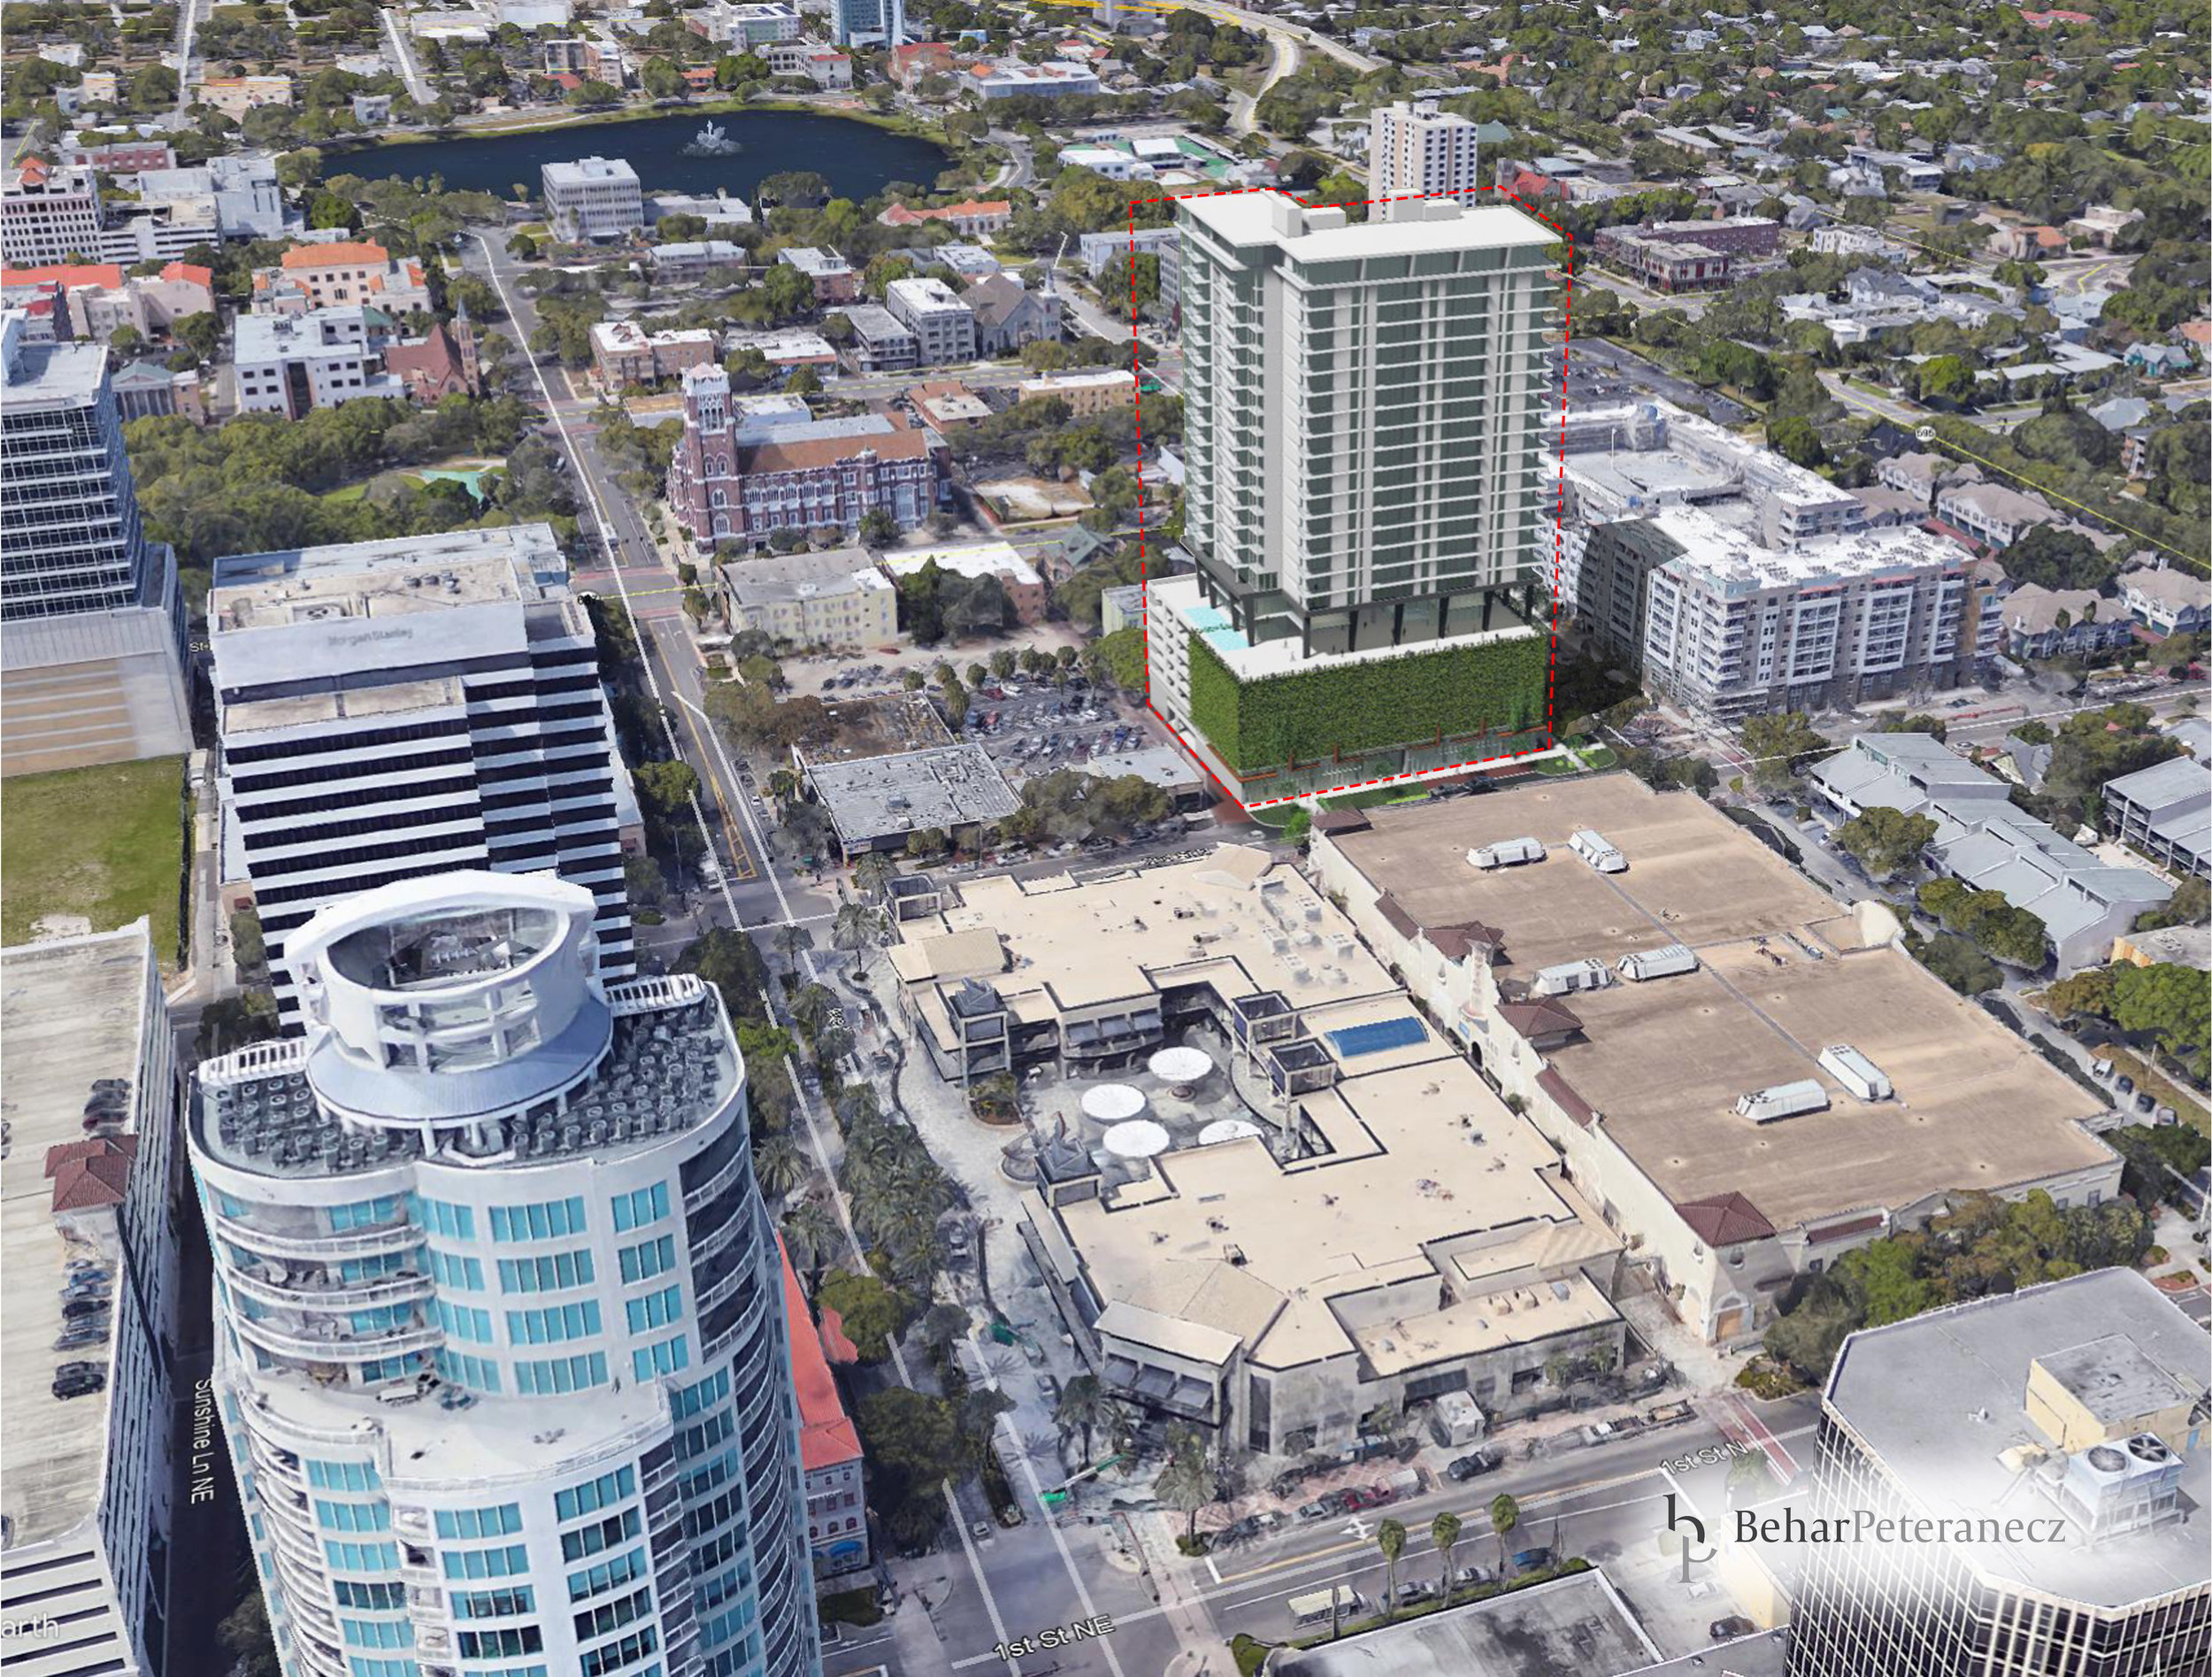 232 2nd St N_ Mixed Use Project_Aerial View 2s.pdf.jpg